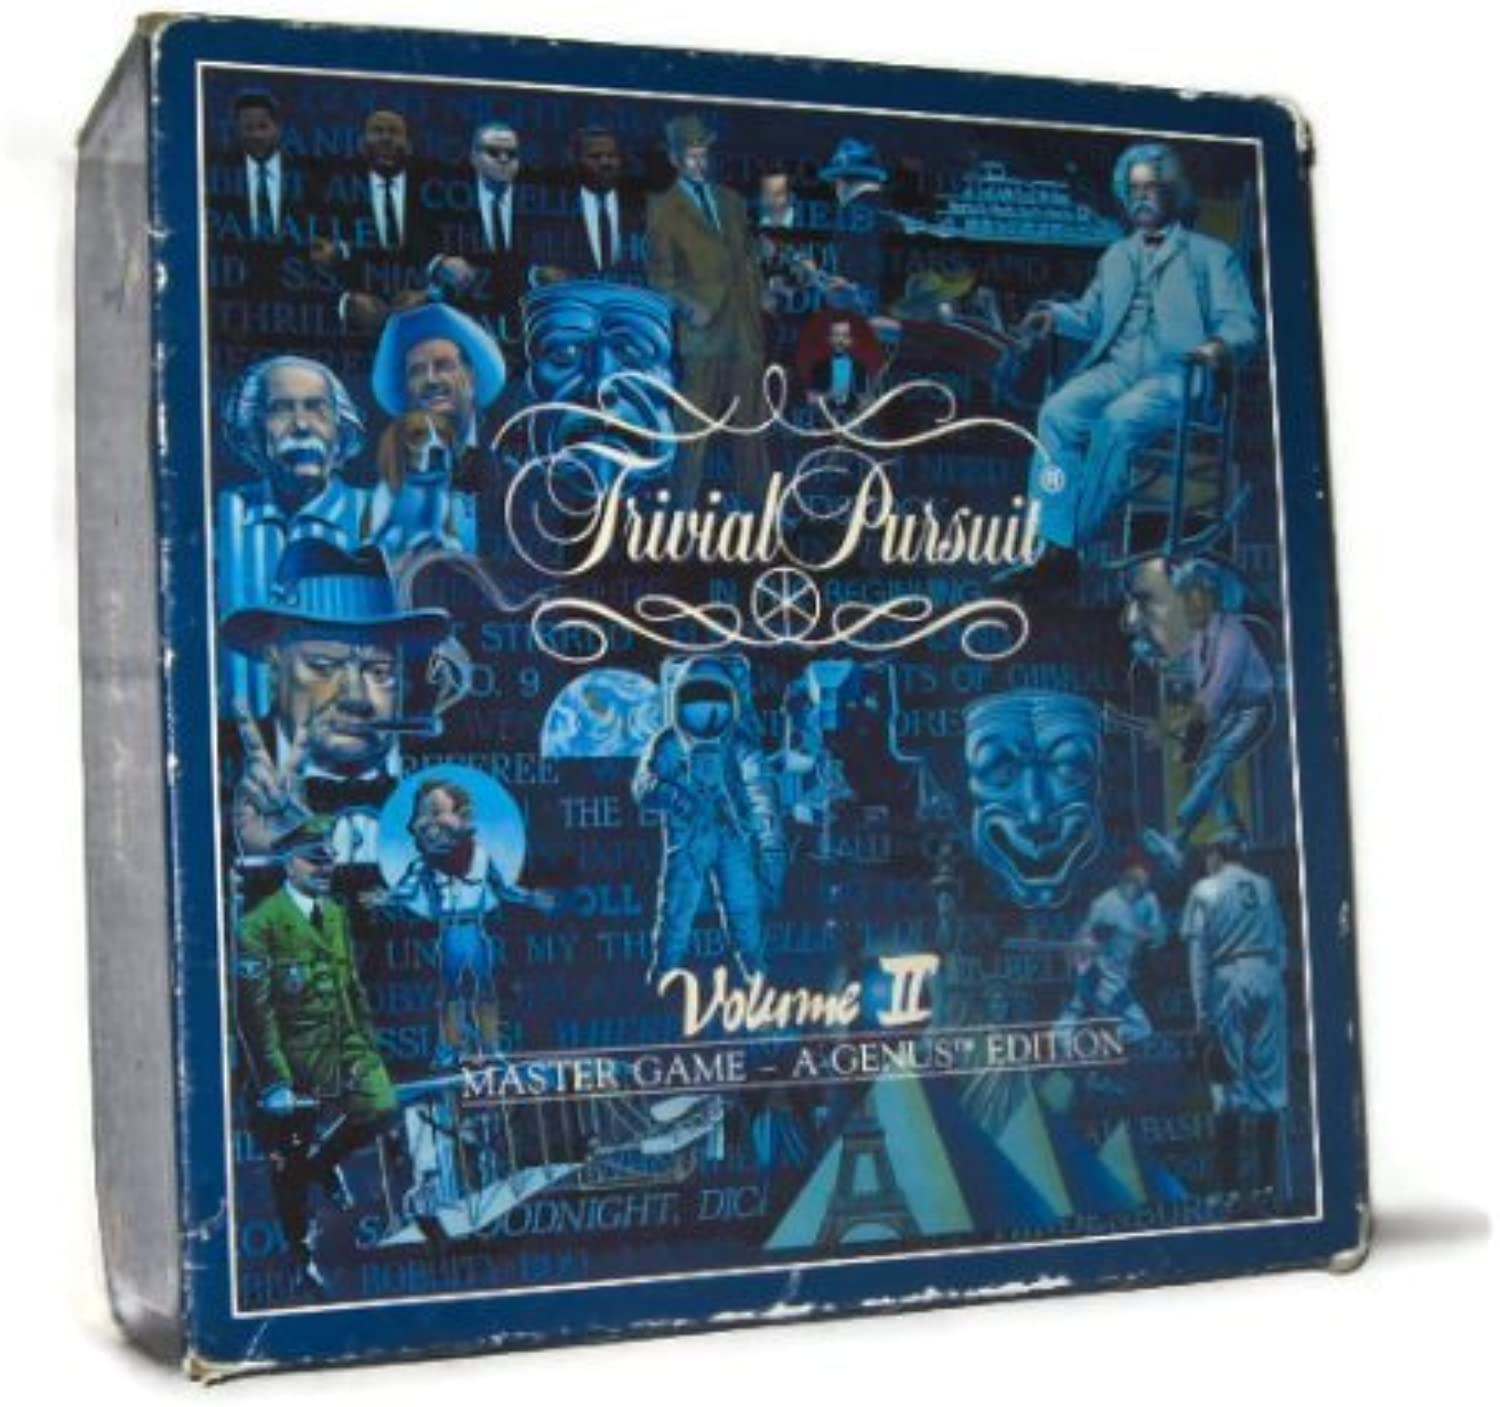 Trivial Pursuit Volume II Master Game  A Genus Edition by Horn Abbot LTD